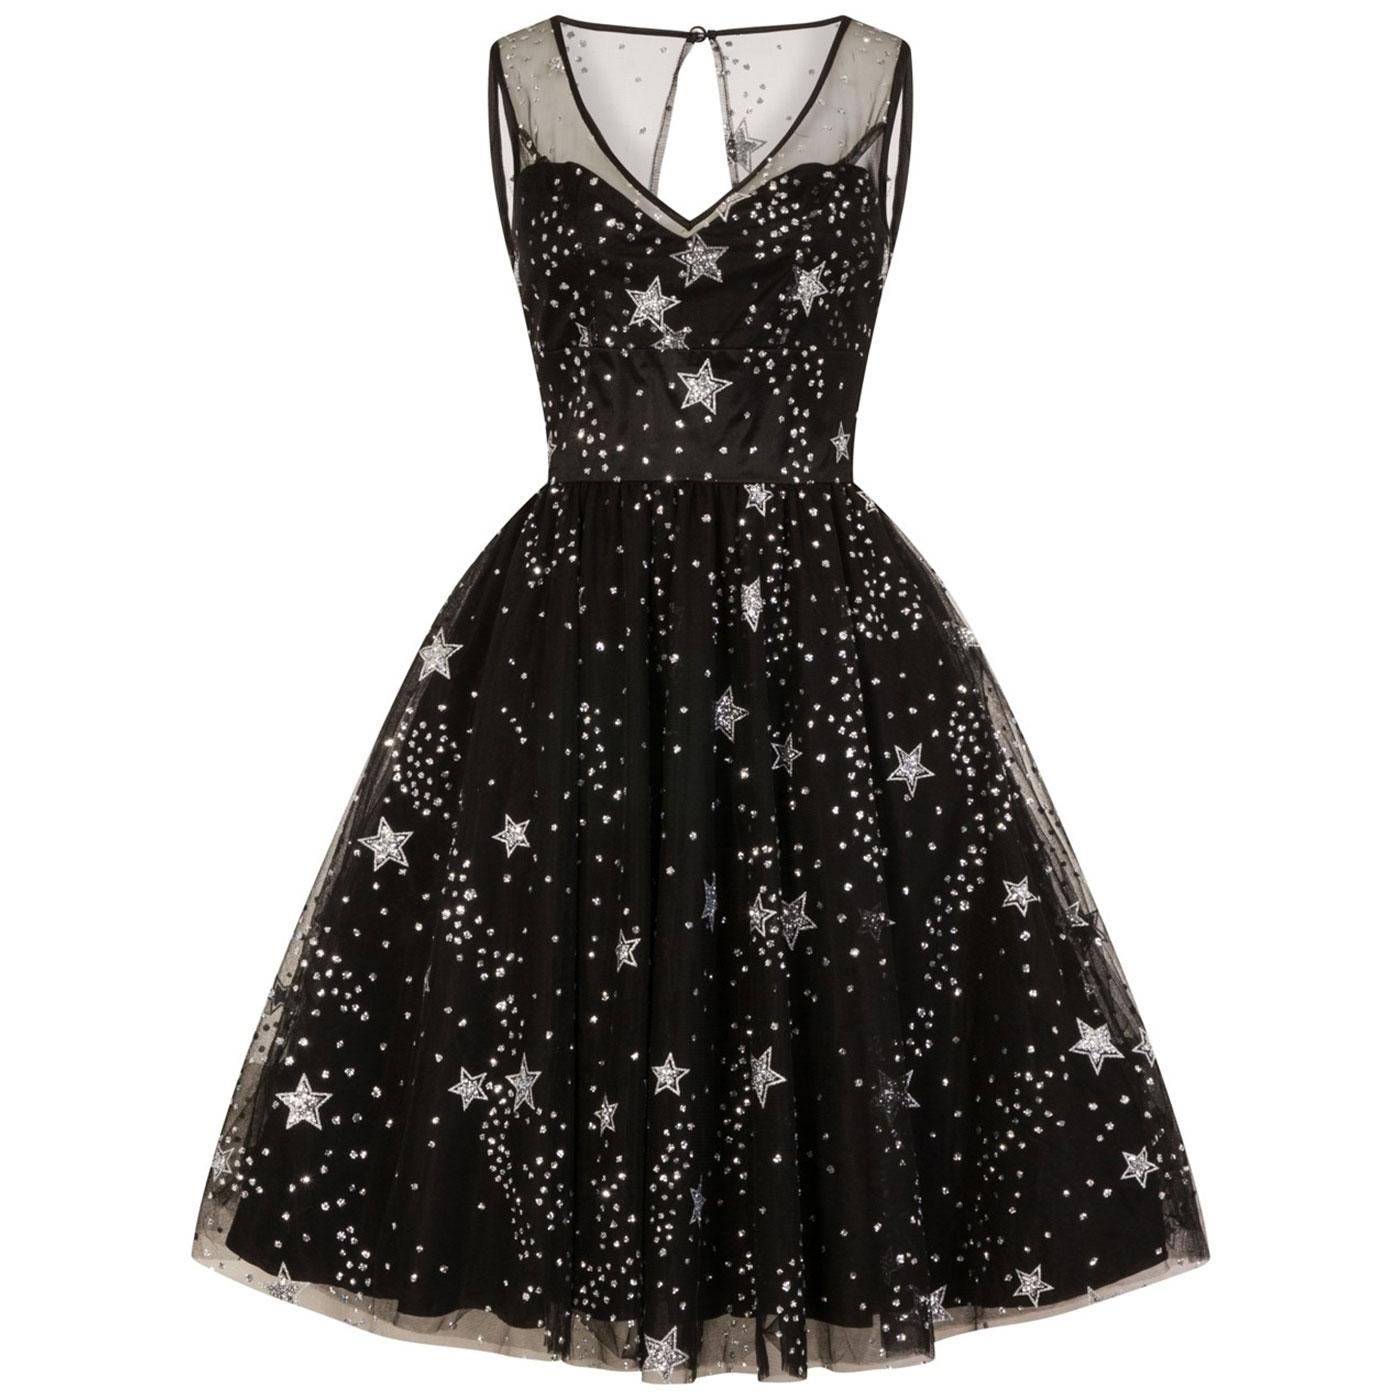 Cosmic Love HELL BUNNY Vintage Stars Tulle Dress